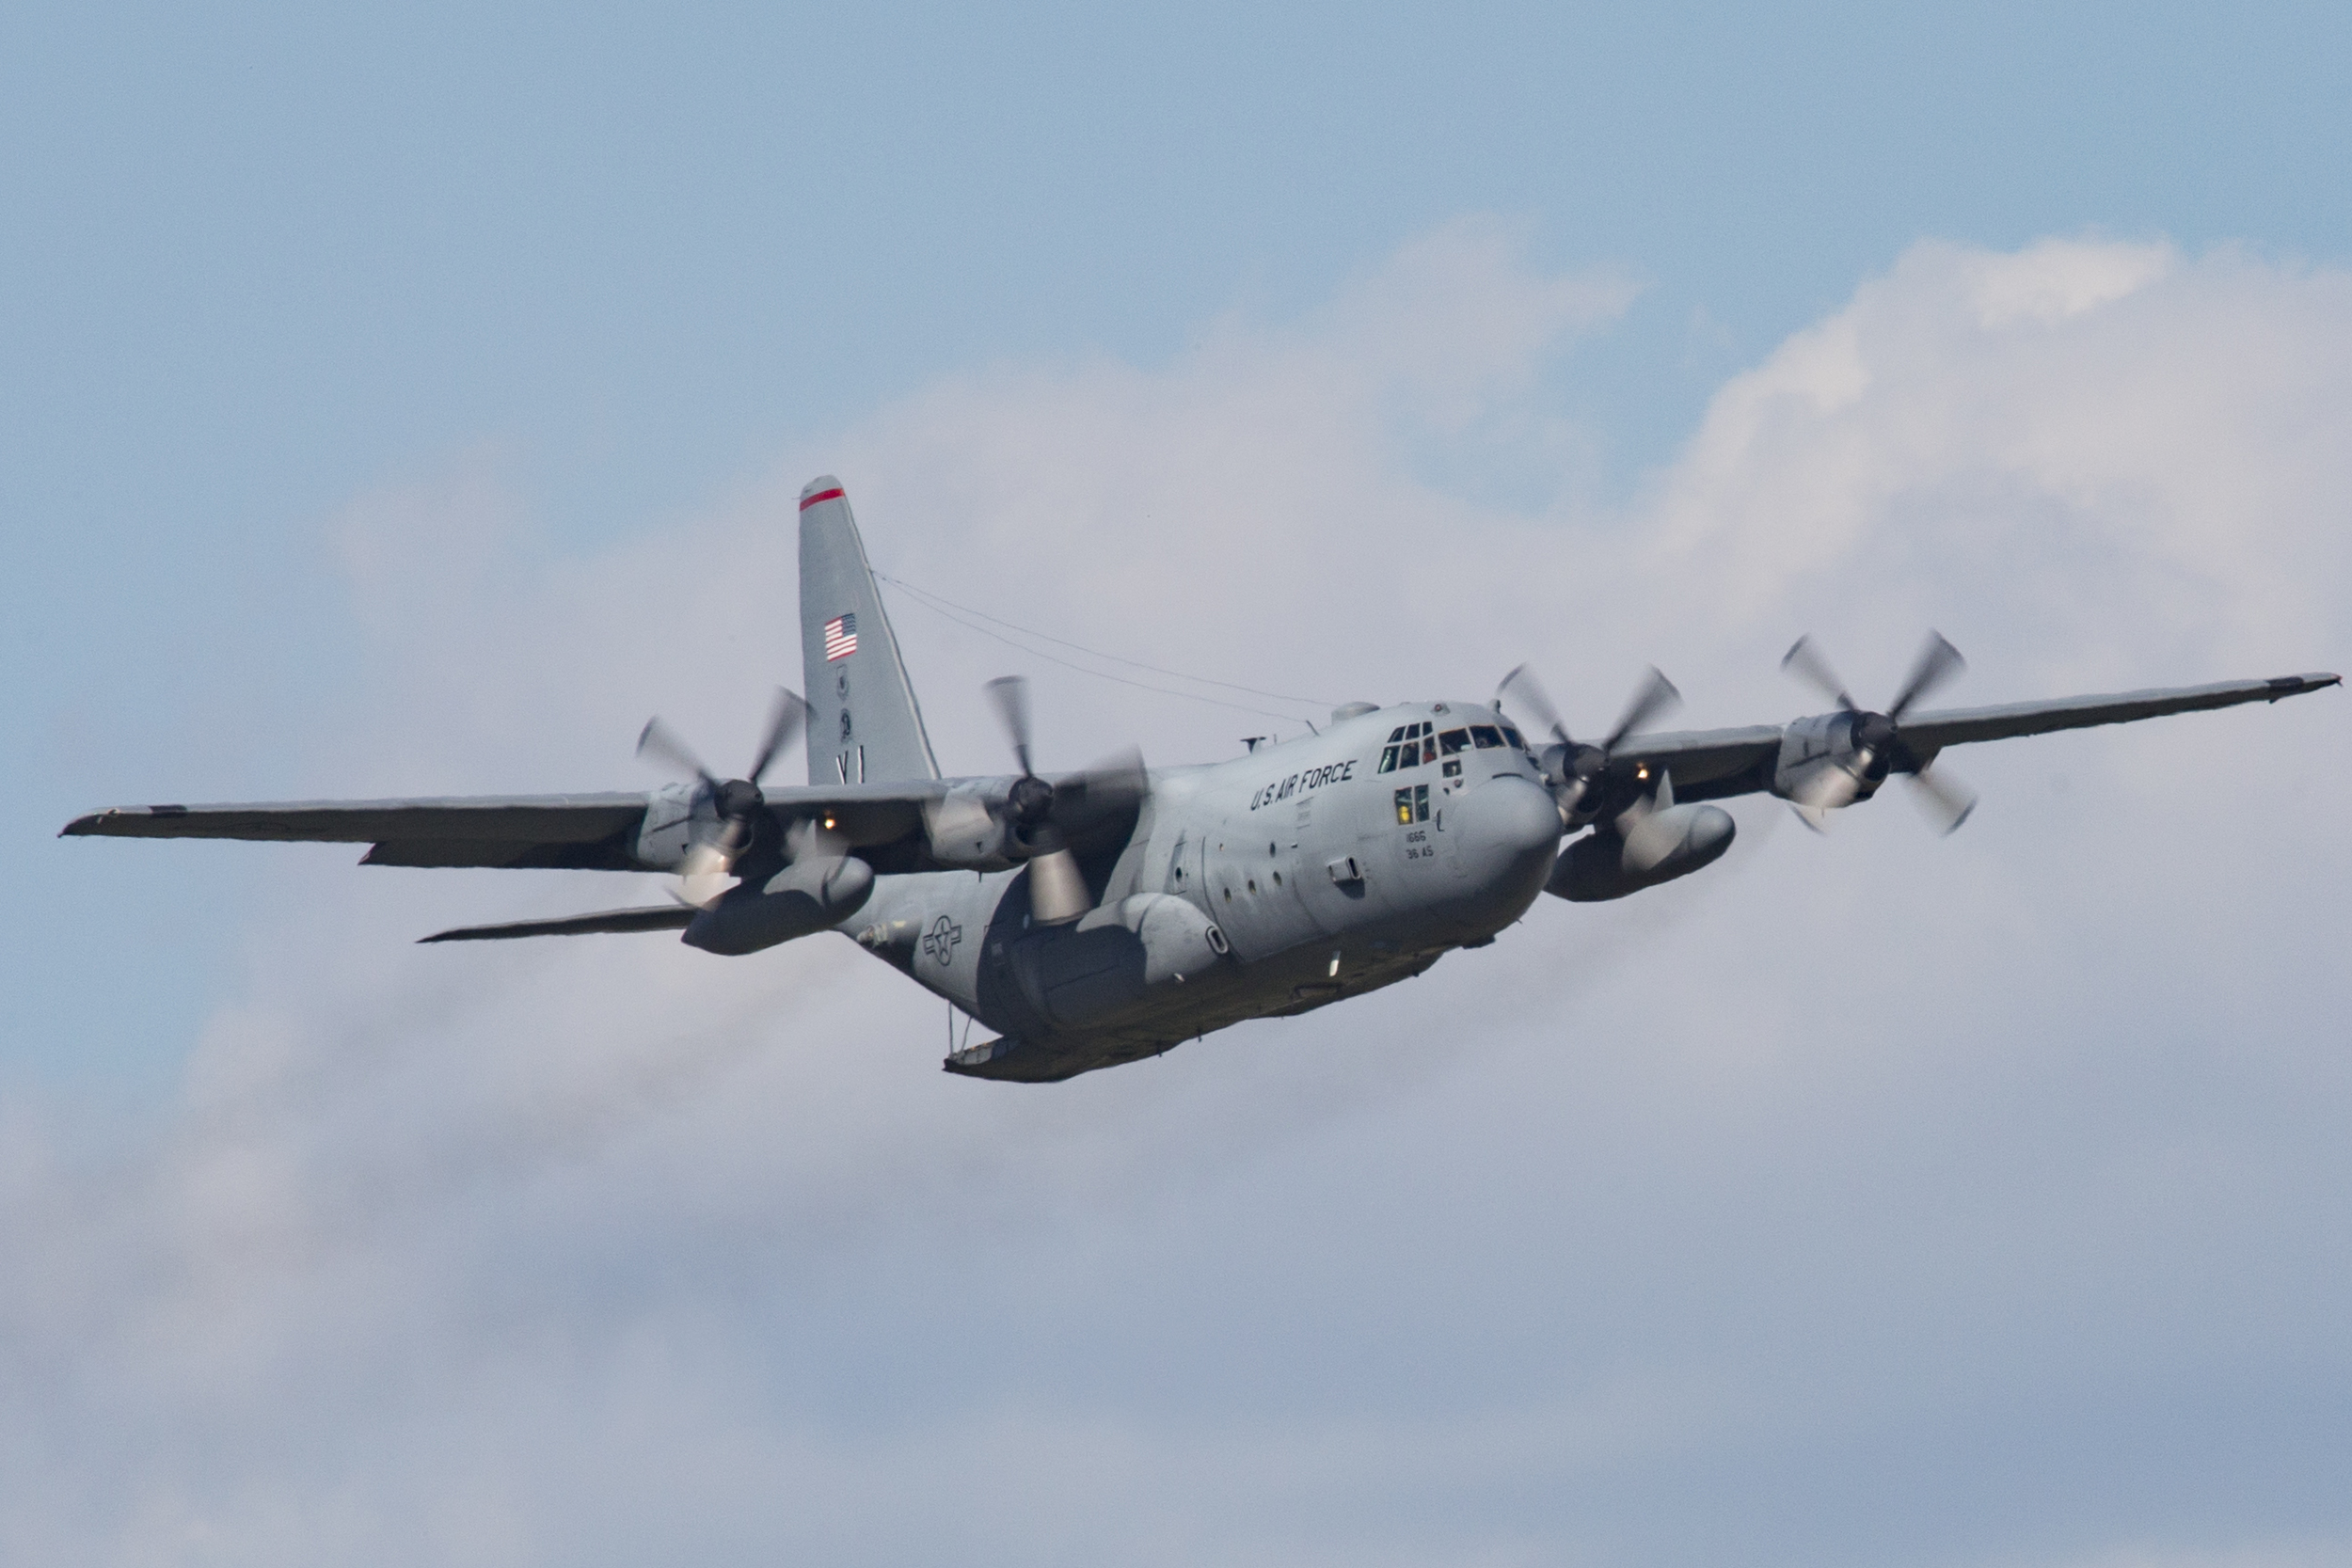 A C-130 Hercules from the 36th Airlift Squadron is ready to perform a low-cost, low-altitude airdrop at Yokota Air Base, Japan, Oct. 8, 2015. The LCLA airdrops are a special container delivery system, designed to be used and discarded rather than turned in and reused. (U.S. Air Force photo by Osakabe Yasuo/Released)